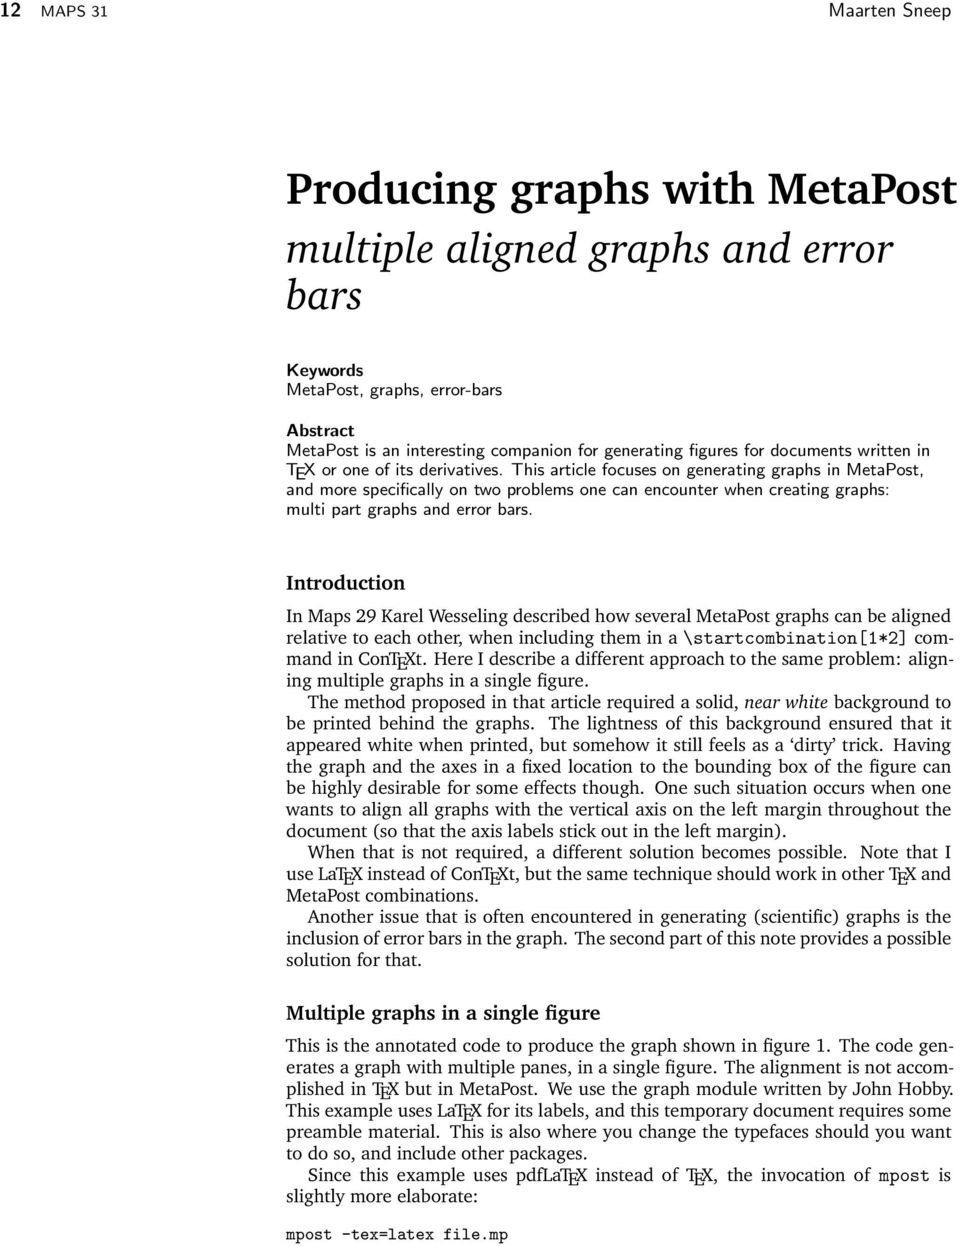 This article focuses on generating graphs in MetaPost, and more specifically on two problems one can encounter when creating graphs: multi part graphs and error bars.